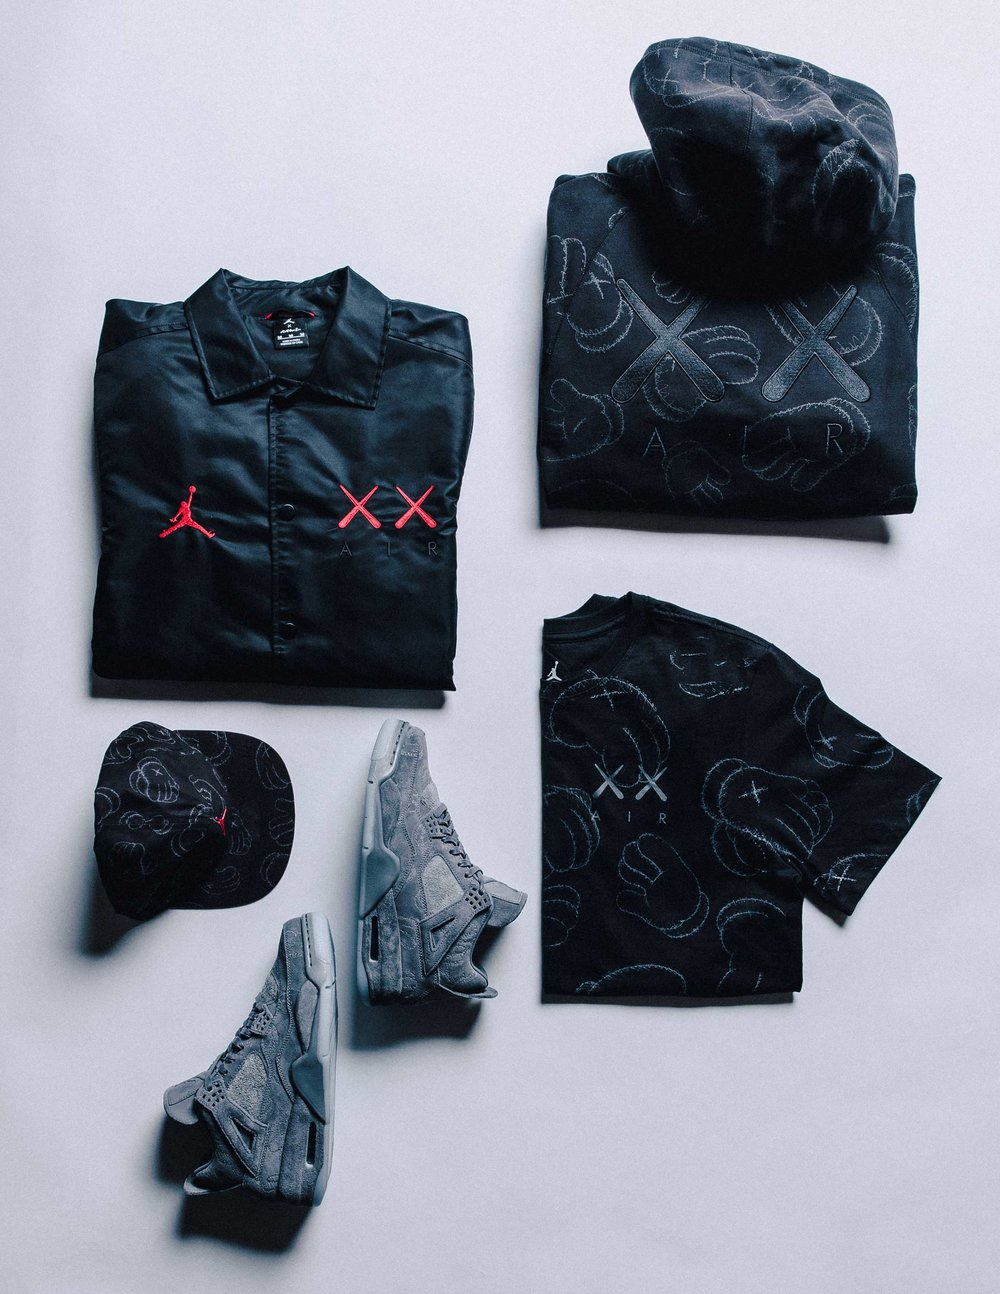 Clink link below items drop tomorrow 3/31/17!   https://air.jordan.com/card/jordan-x-kaws/